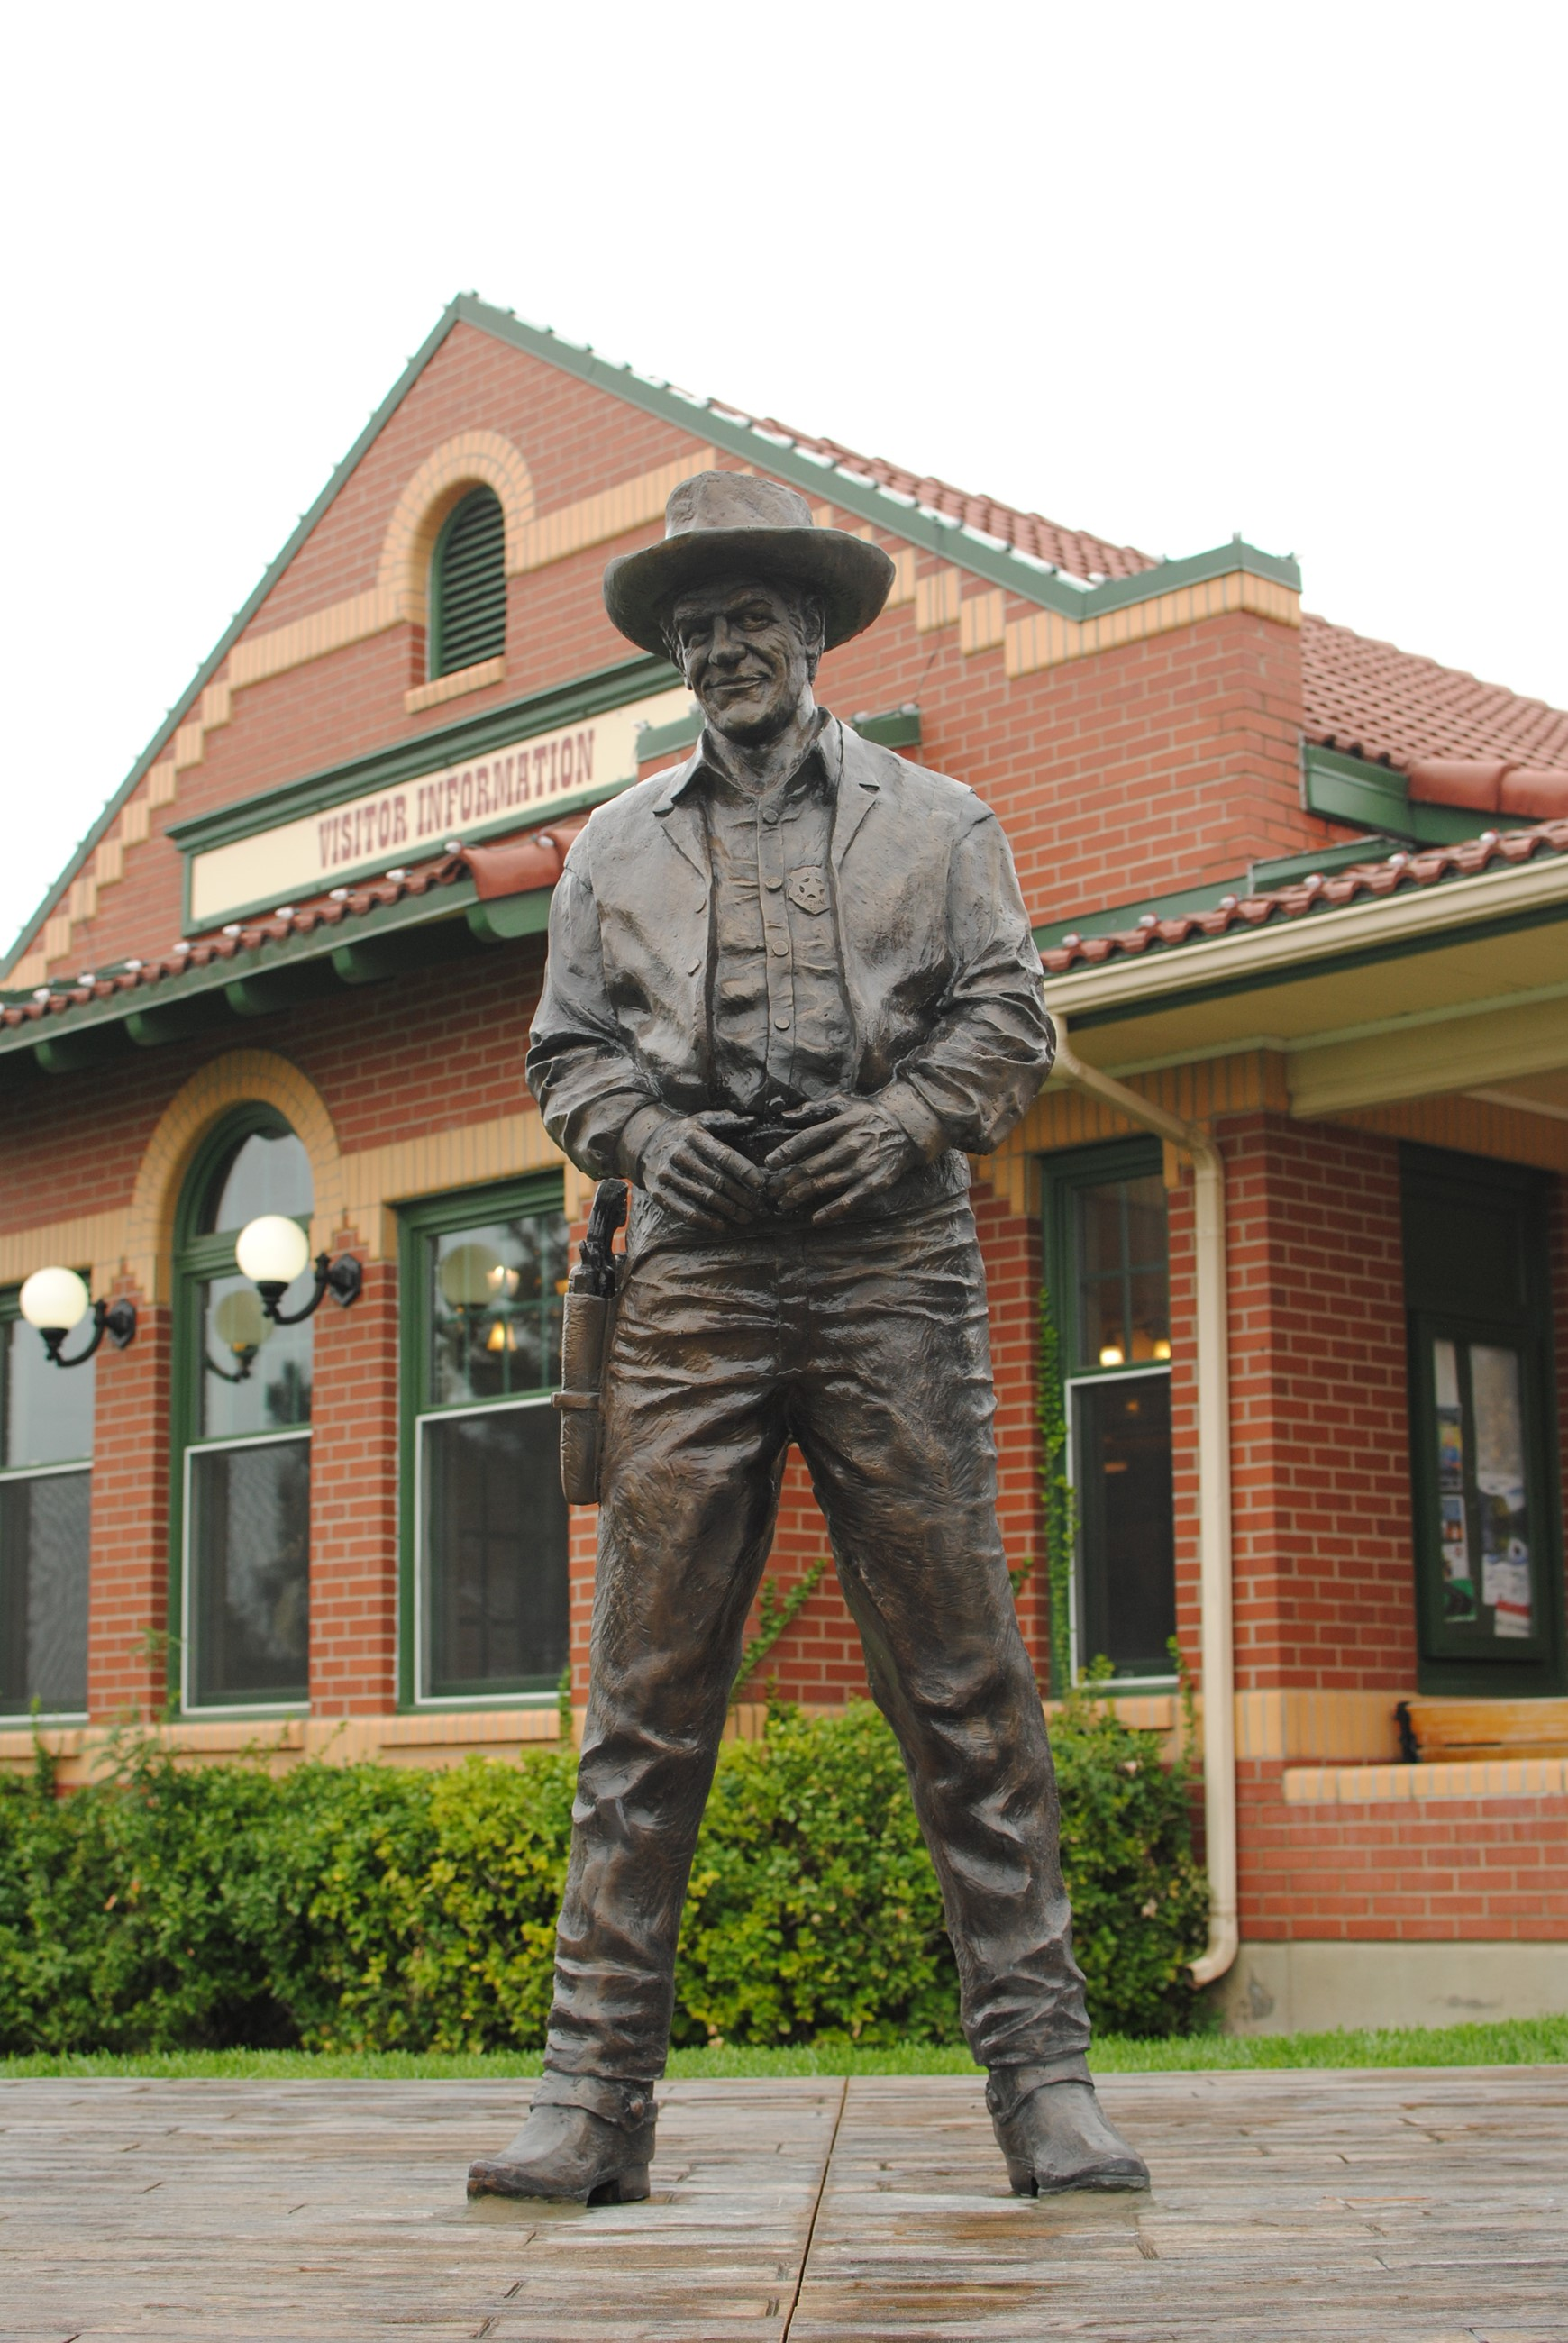 Statue in front of Visitor Information